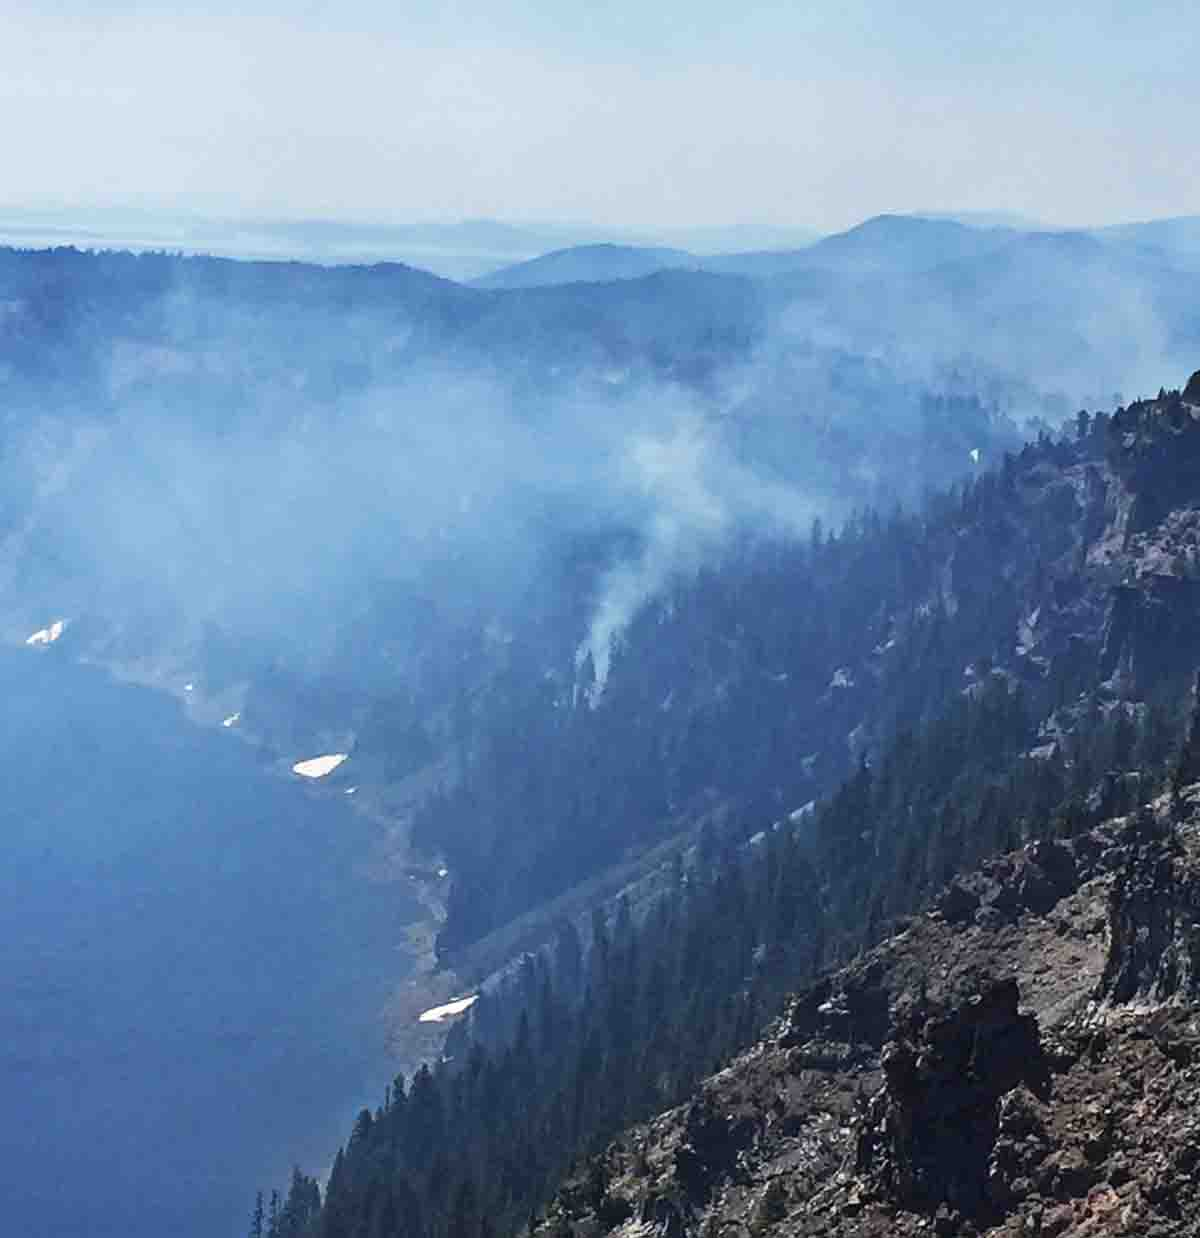 Bybee Creek Fire